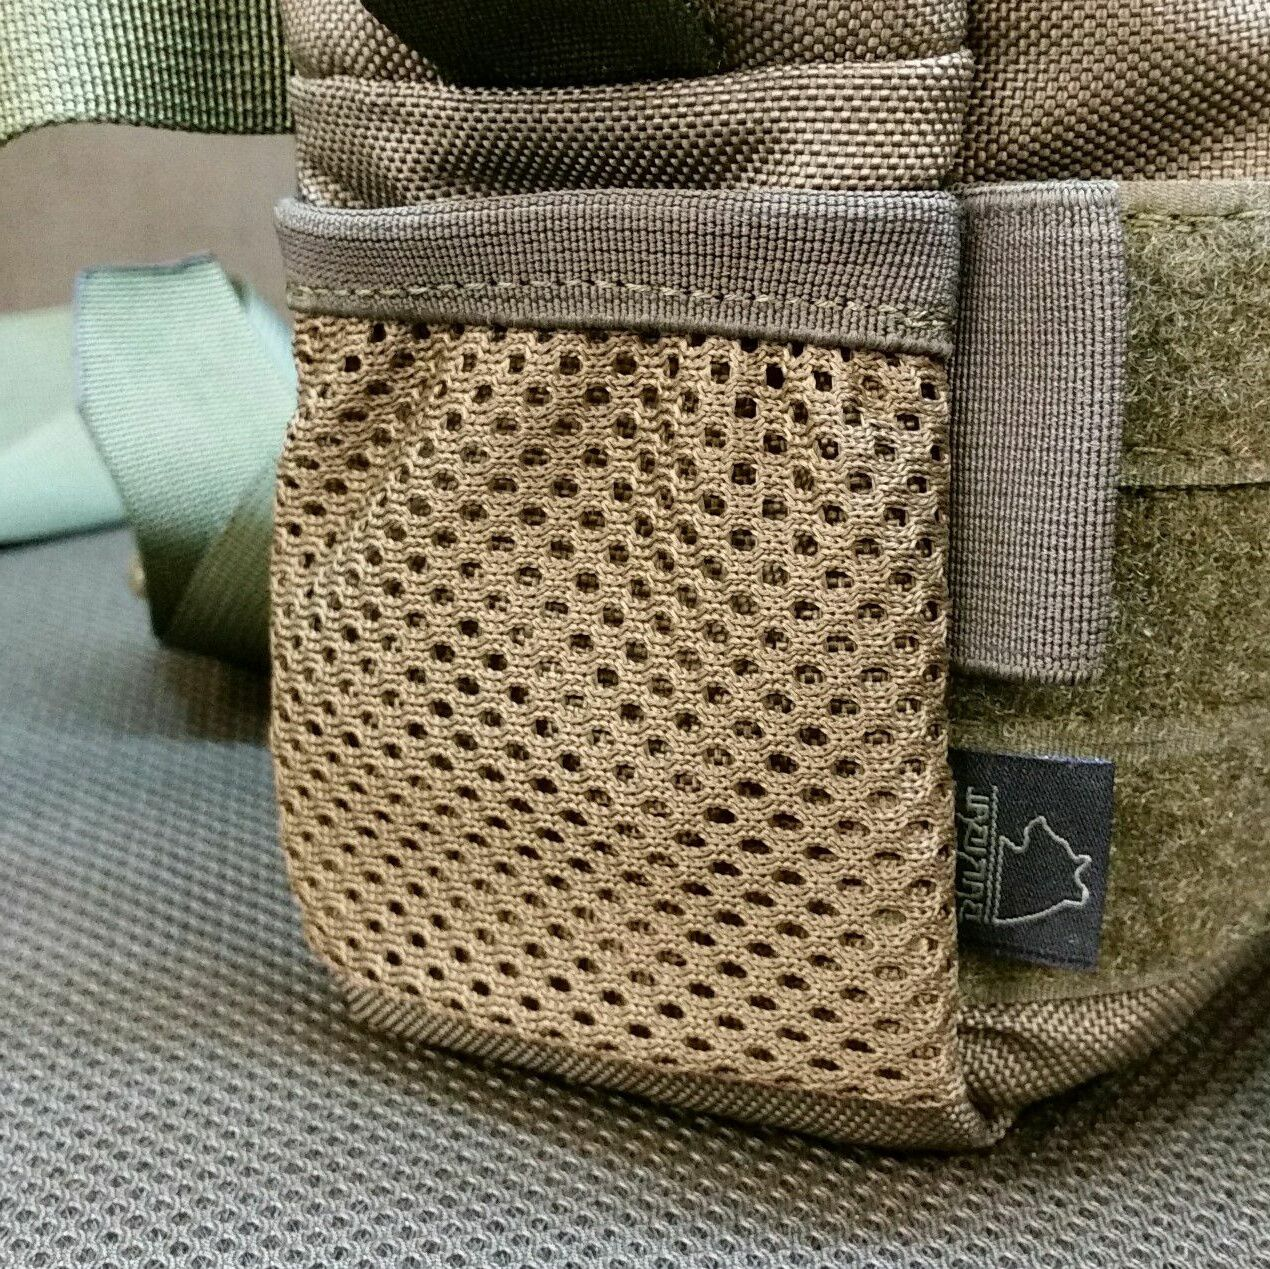 Mesh pocket instead of shockcord loops on the left side (looking at front) +7pln